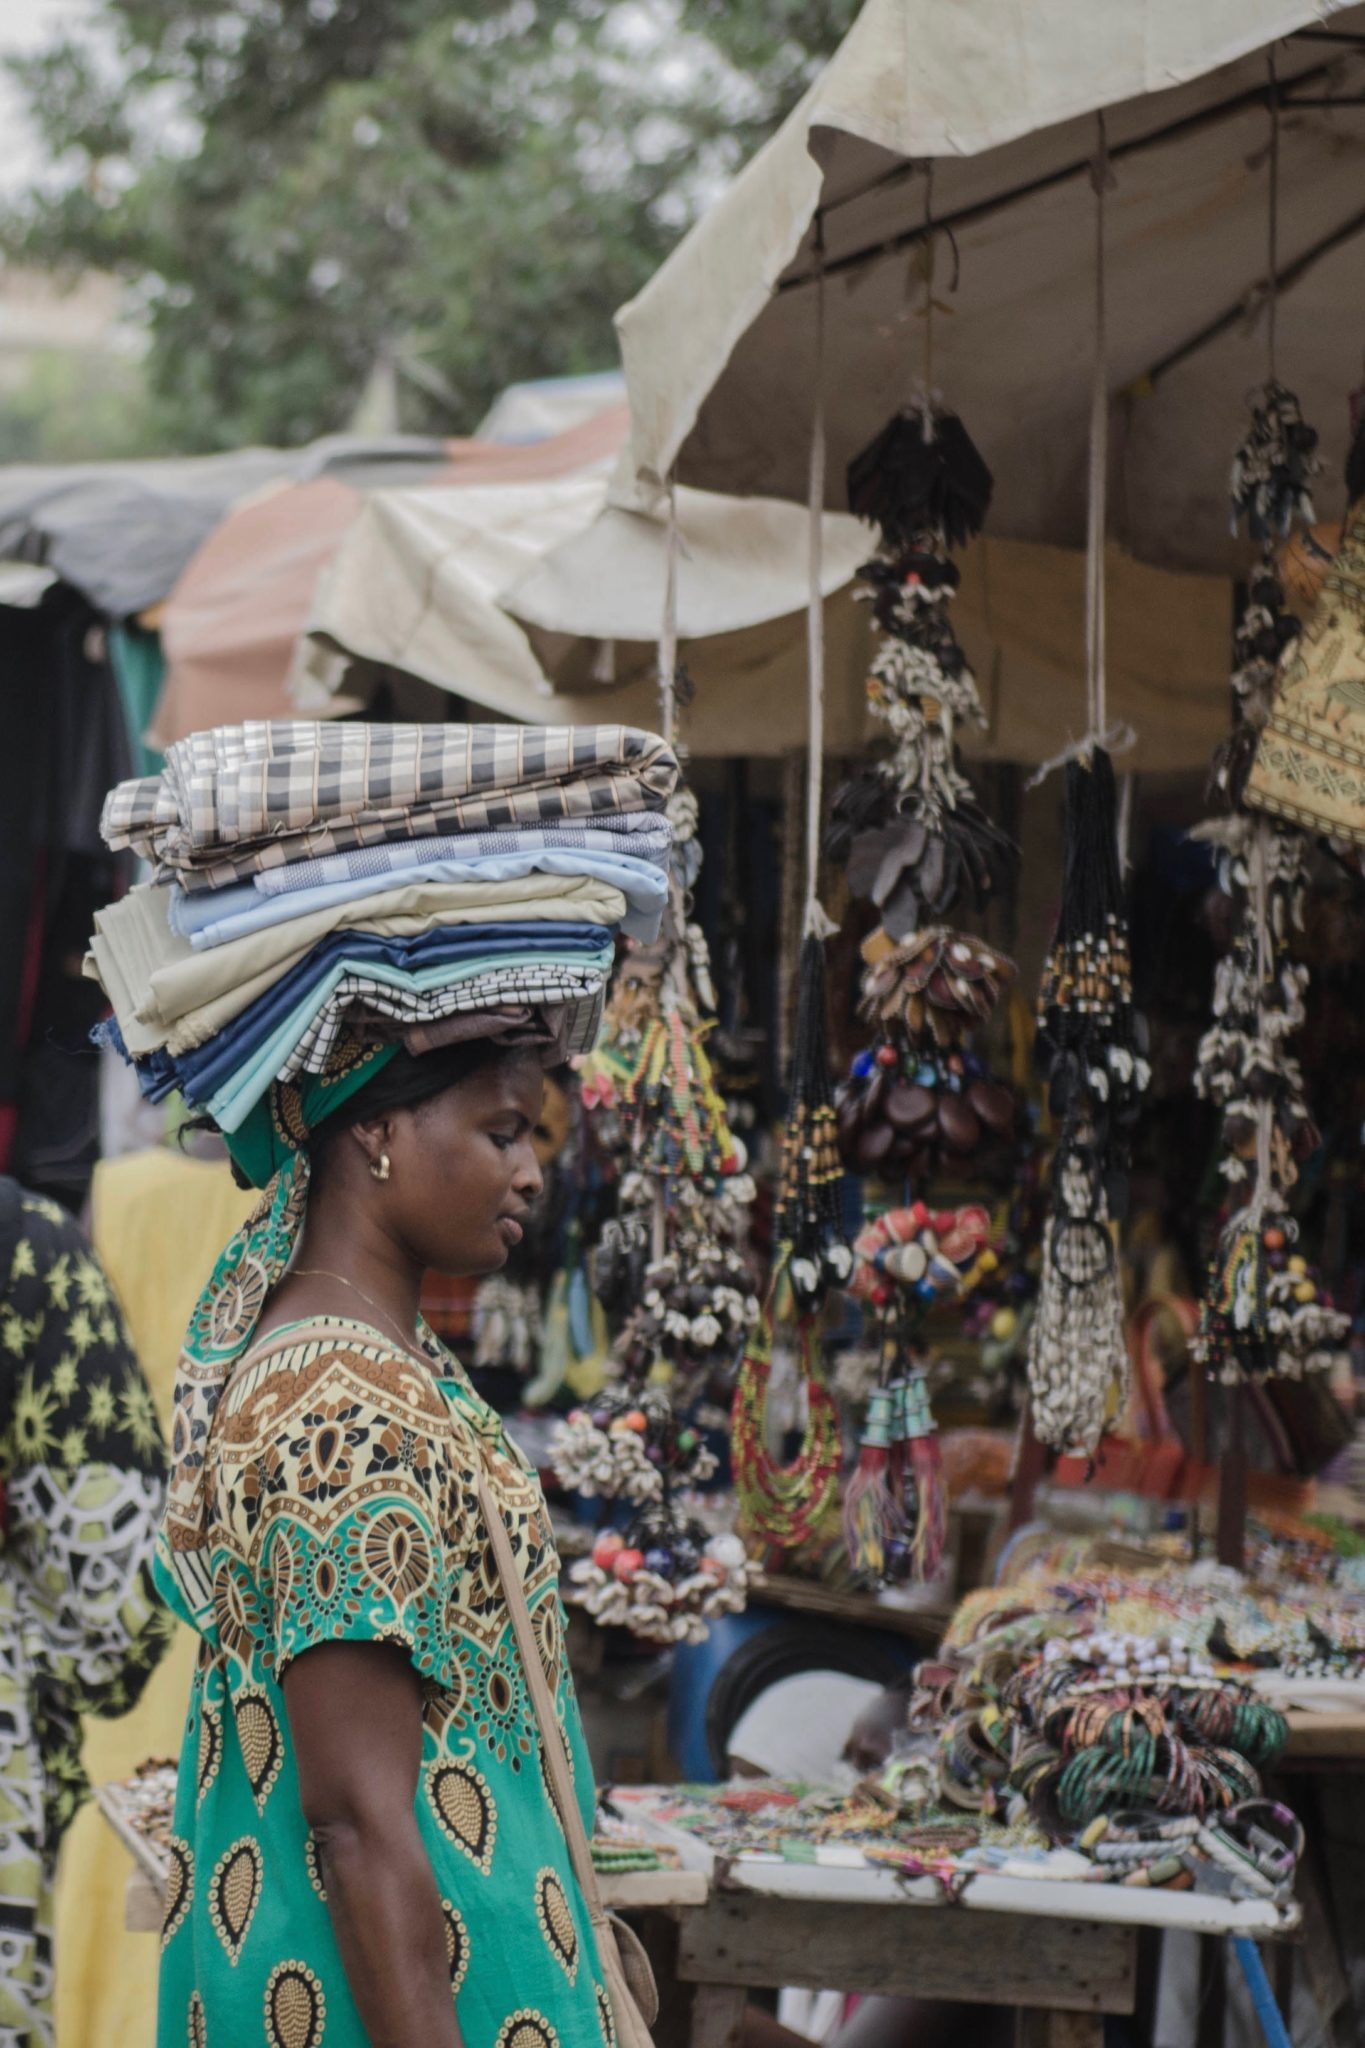 Senegal Travel Blog: The colourful markets of Dakar are on of the best places to visit in Senegal